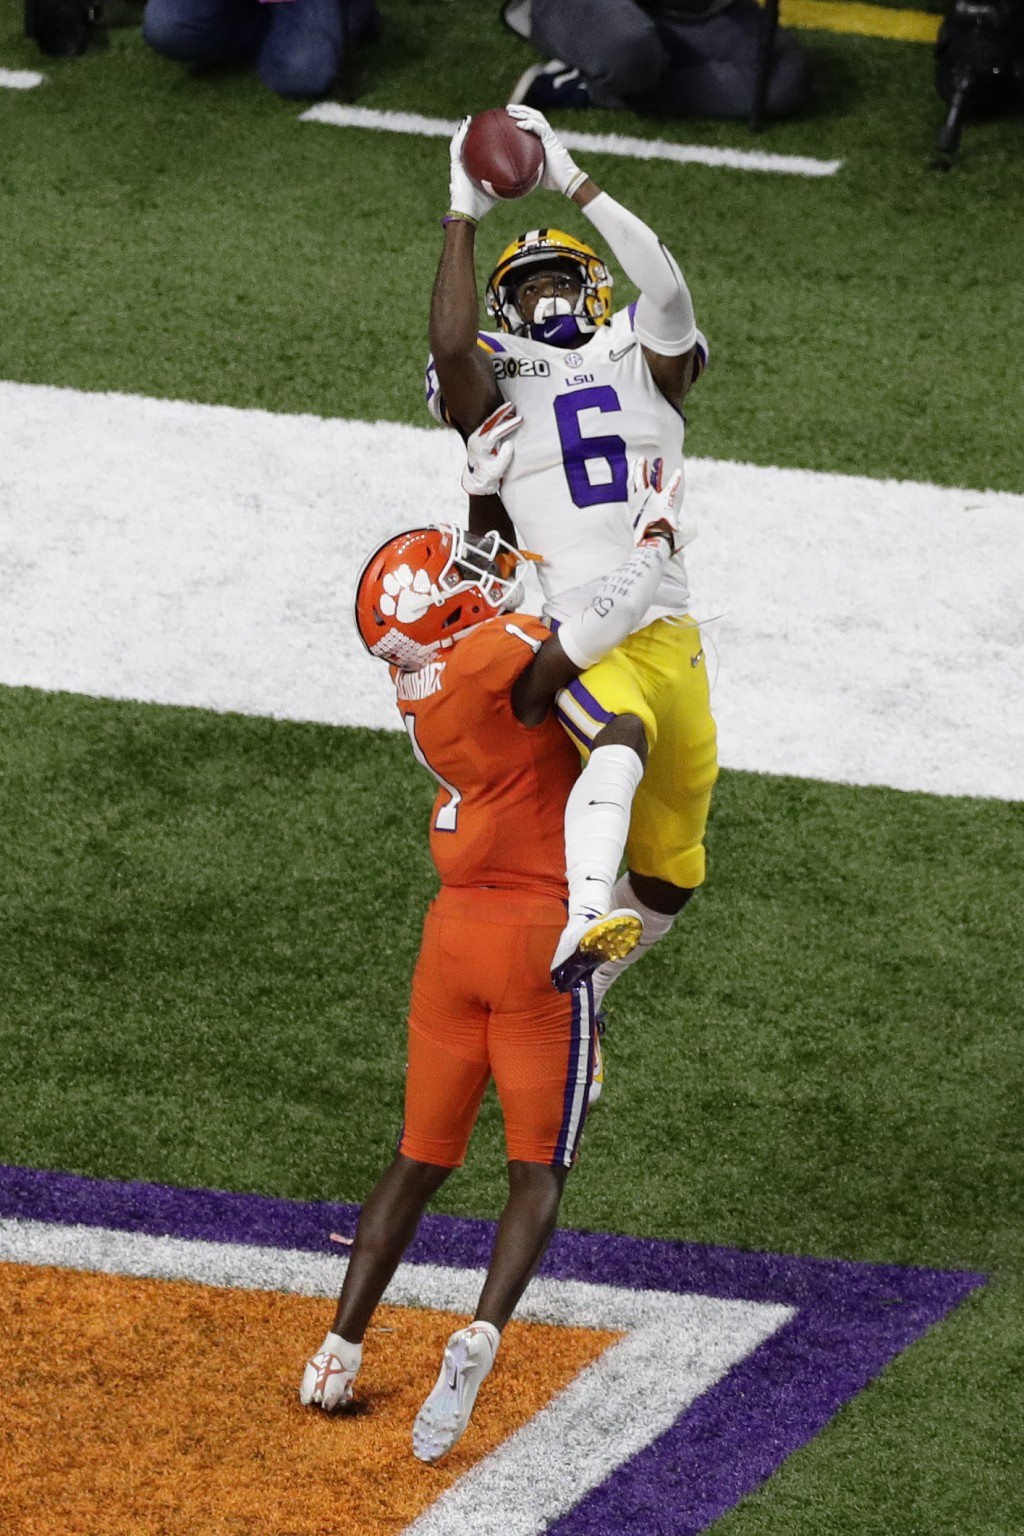 LSU wide receiver Terrace Marshall Jr. catches a touchdown pass over Clemson cornerback Derion Kendrick during the second half of a NCAA College Footb...